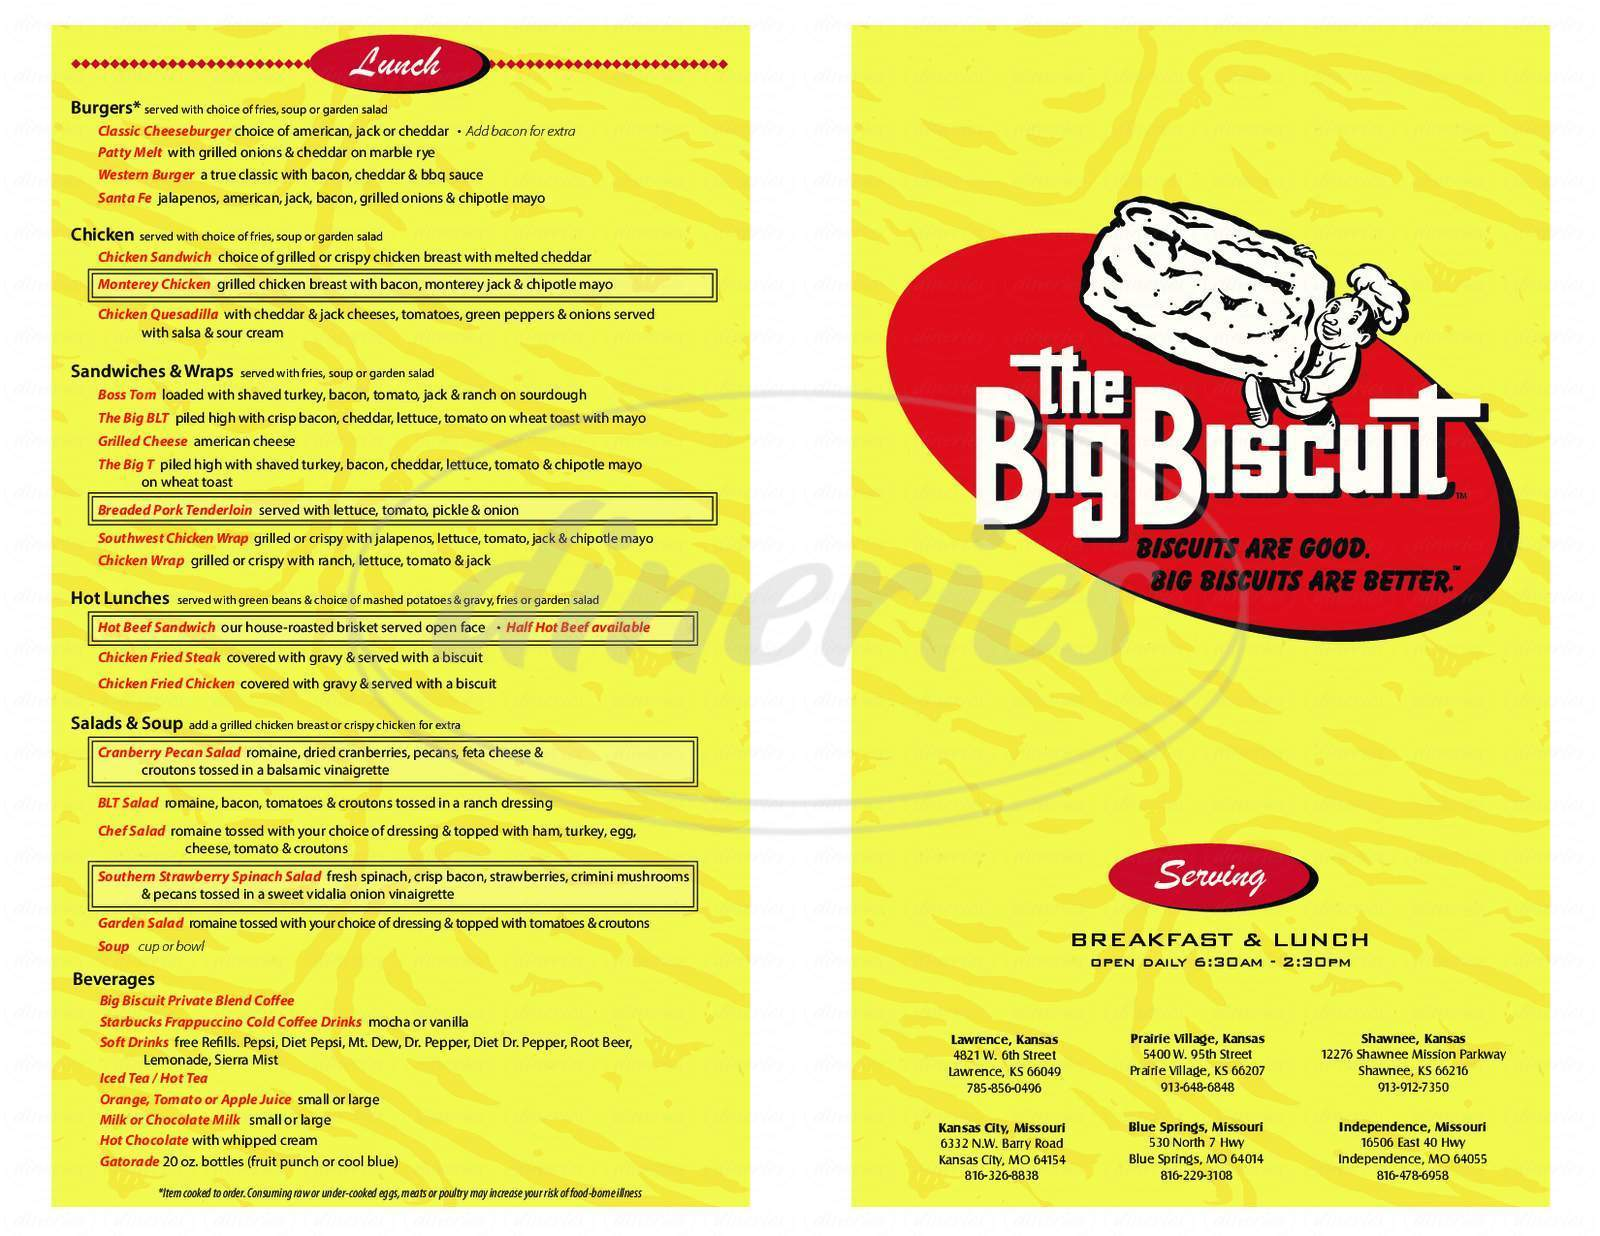 menu for The Big Biscuit